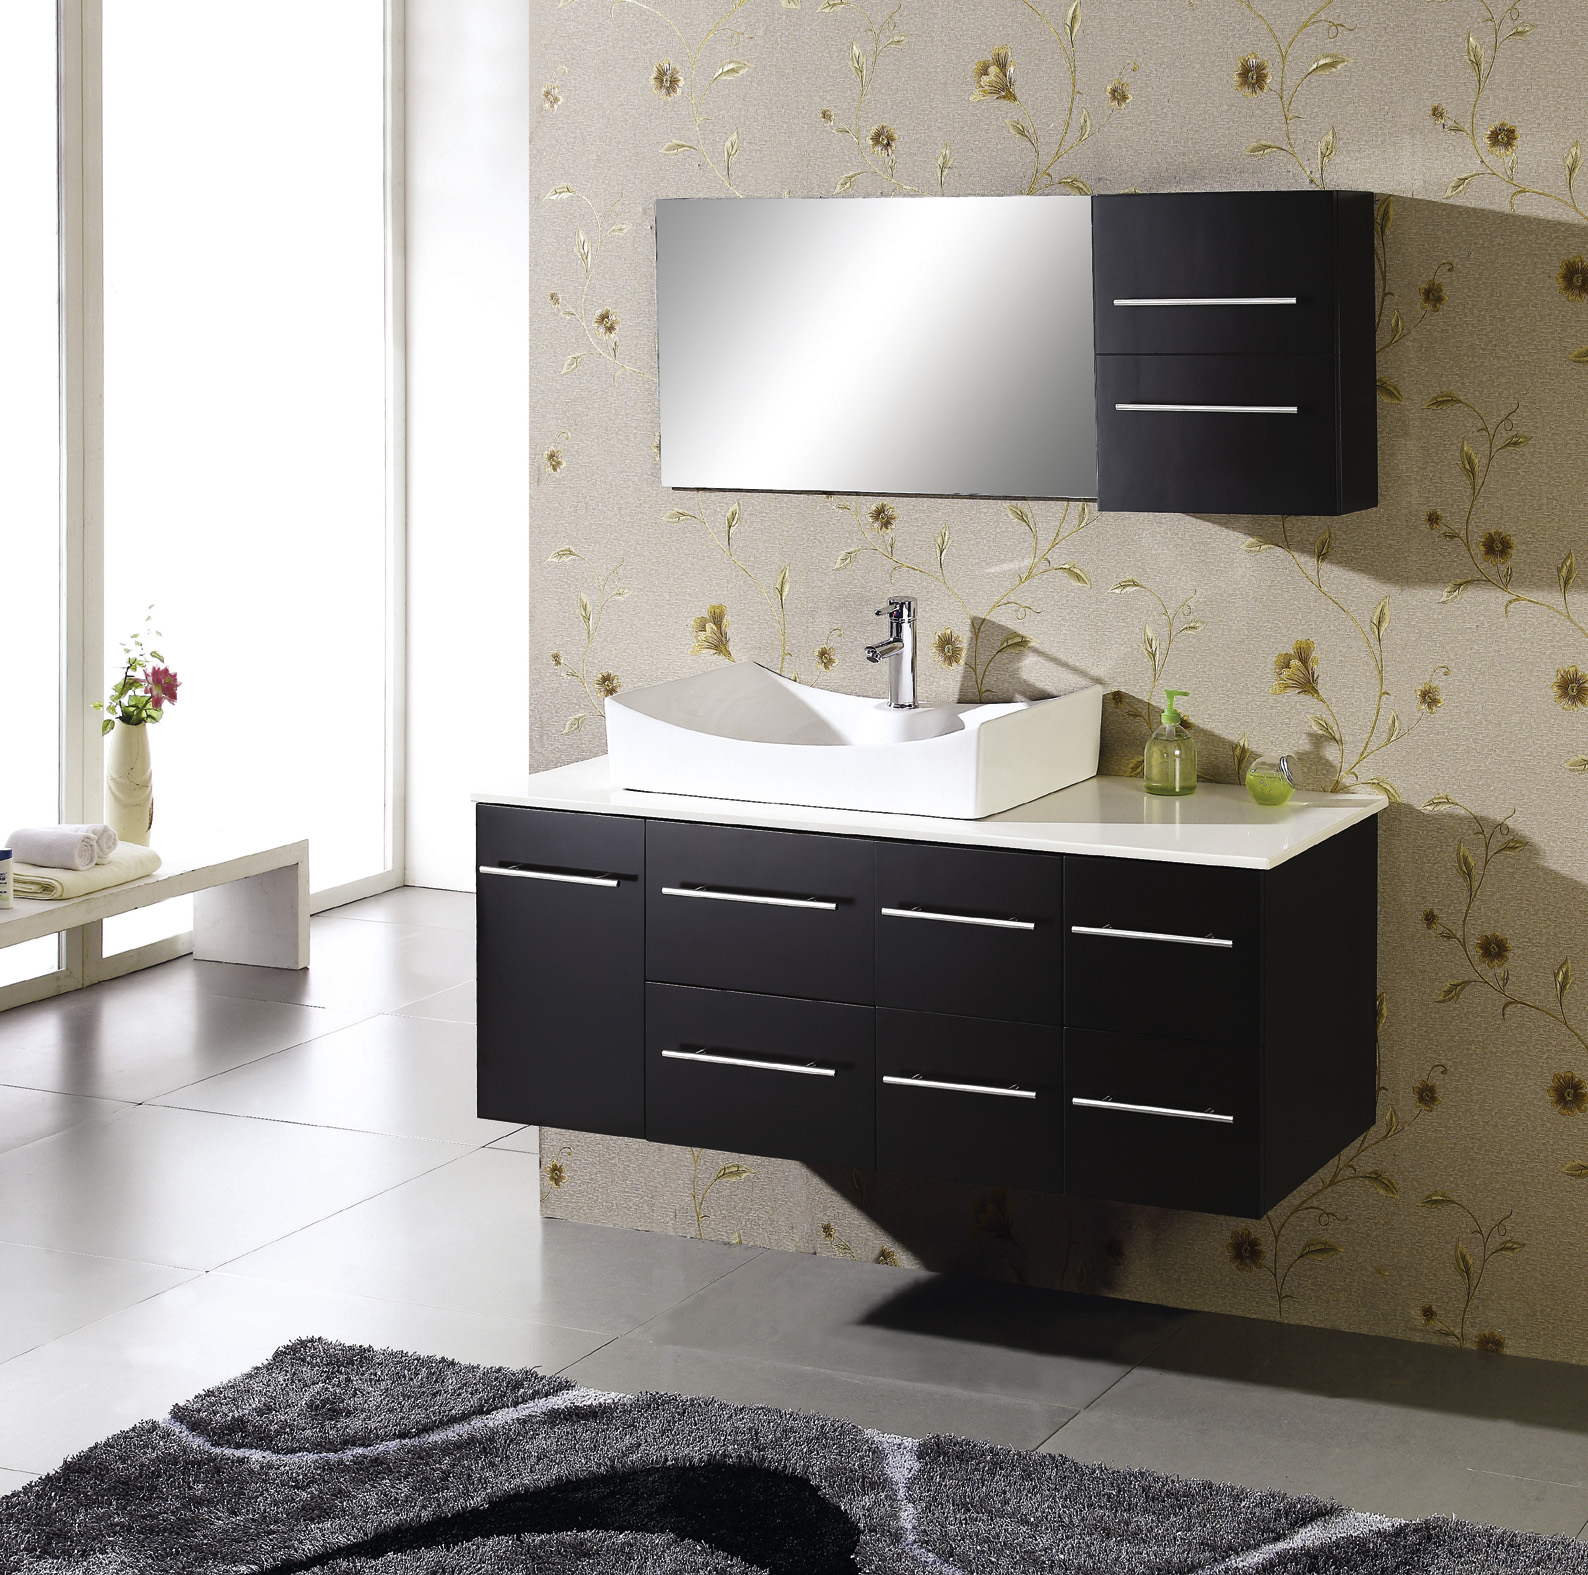 Modern bathroom vanity unit with white contemporary vanity sink and faucet